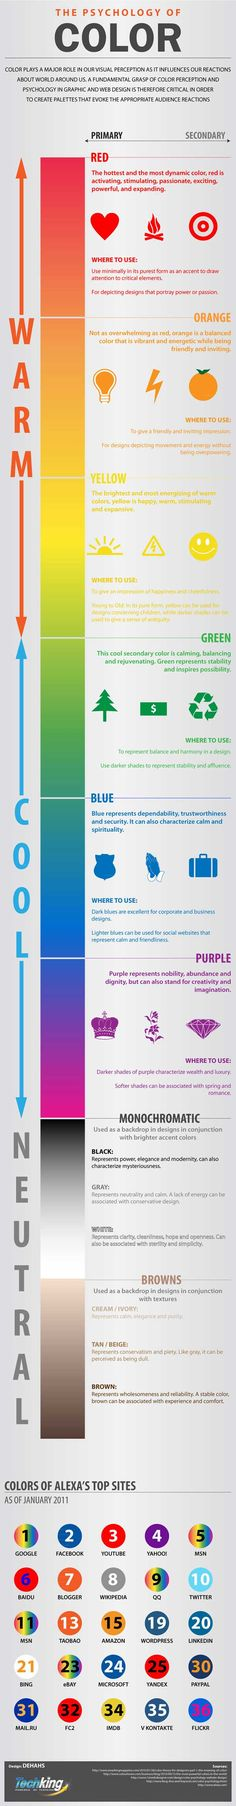 The Psychology of color.  La psicología del color.